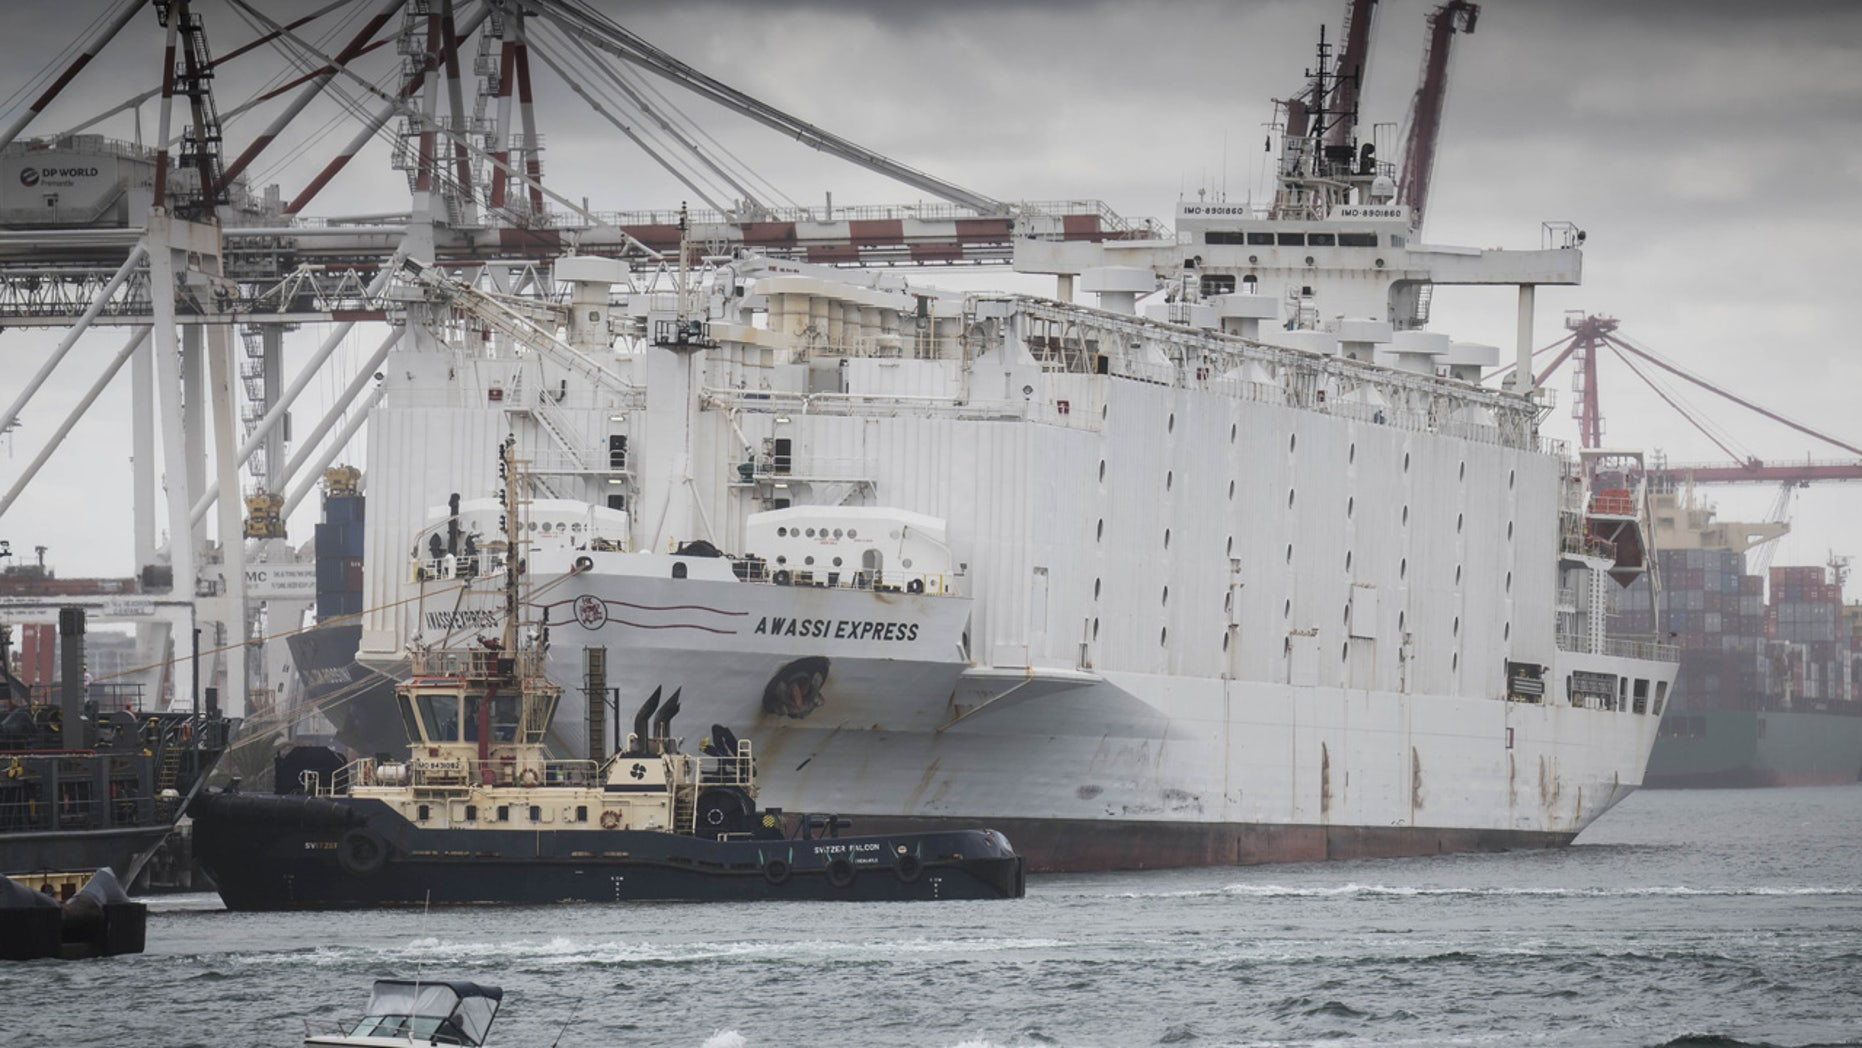 April 9: The Awassi Express is seen docked at the port of Fremantle, Perth, Australia.